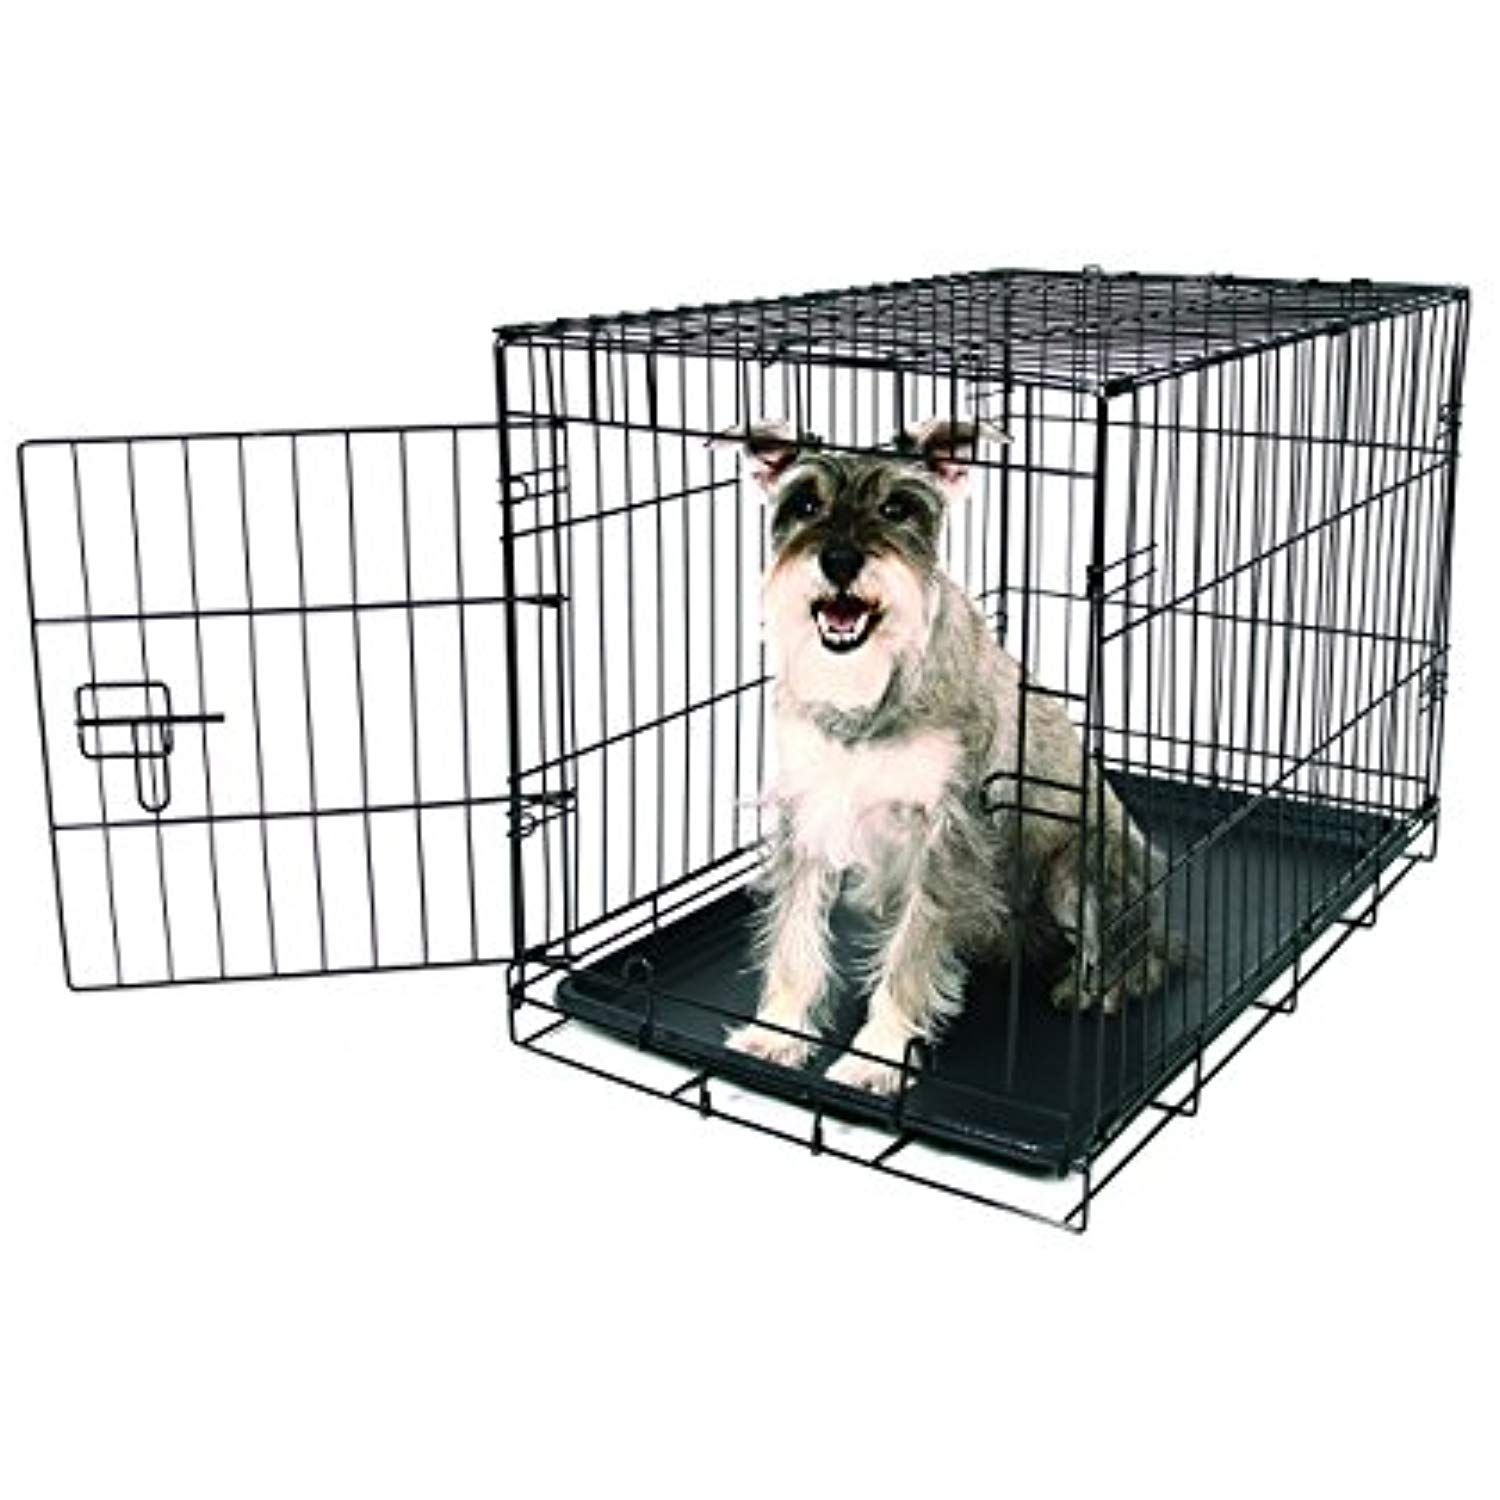 Carlson Pet Products Secure And Foldable Single Door Metal Dog Crate Medium You Can Find Out More Details At The L Dog Crate Wire Dog Crates Xxl Dog Crate